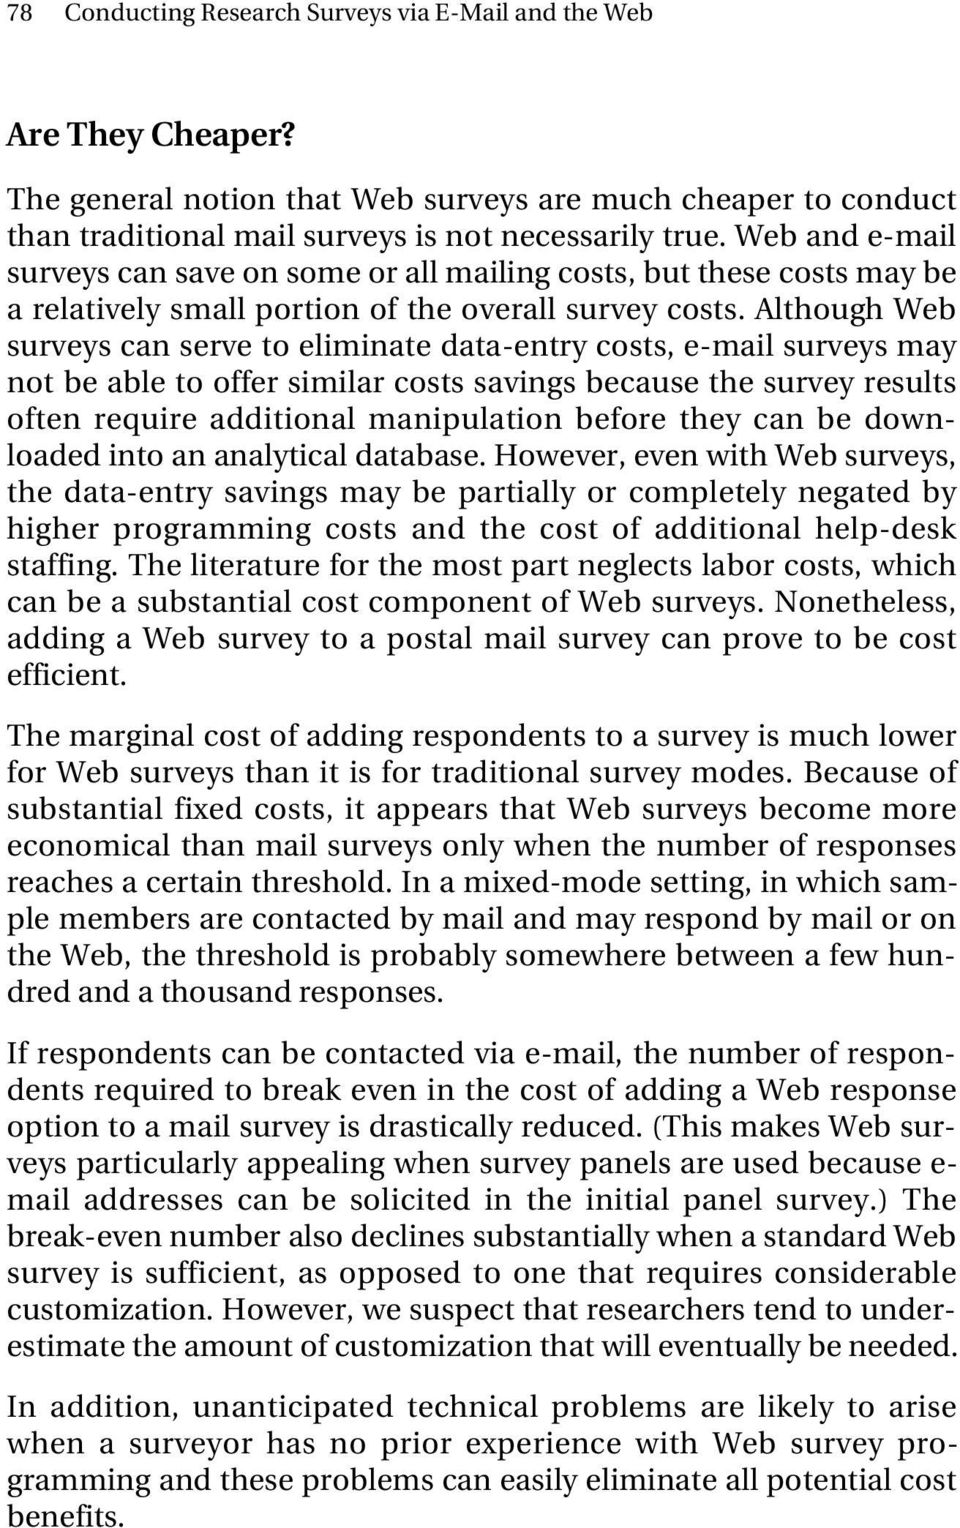 Although Web surveys can serve to eliminate data-entry costs, e-mail surveys may not be able to offer similar costs savings because the survey results often require additional manipulation before